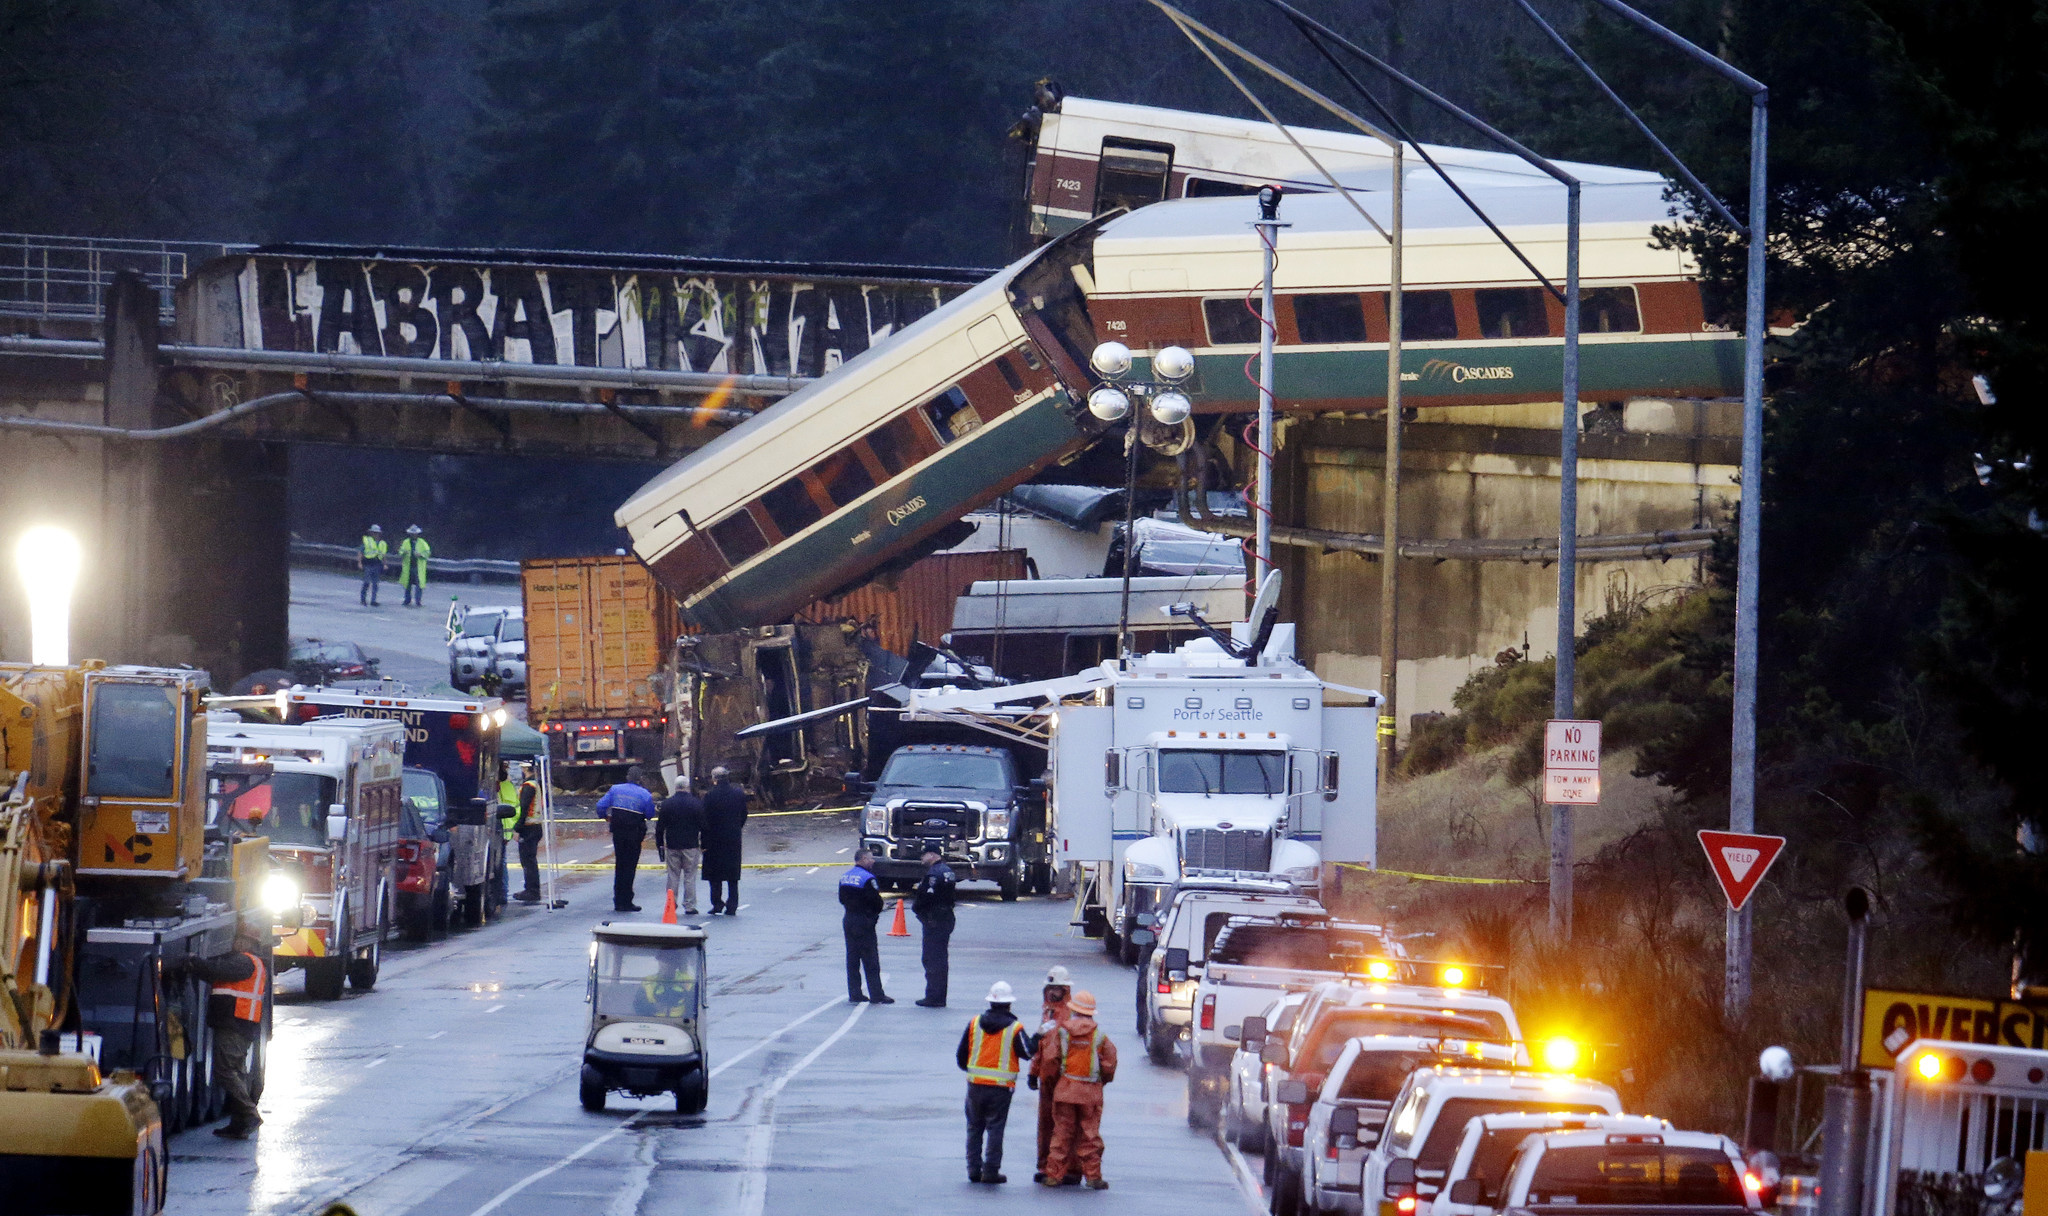 Multiple people killed after Amtrak train derails in Washington, authorities say